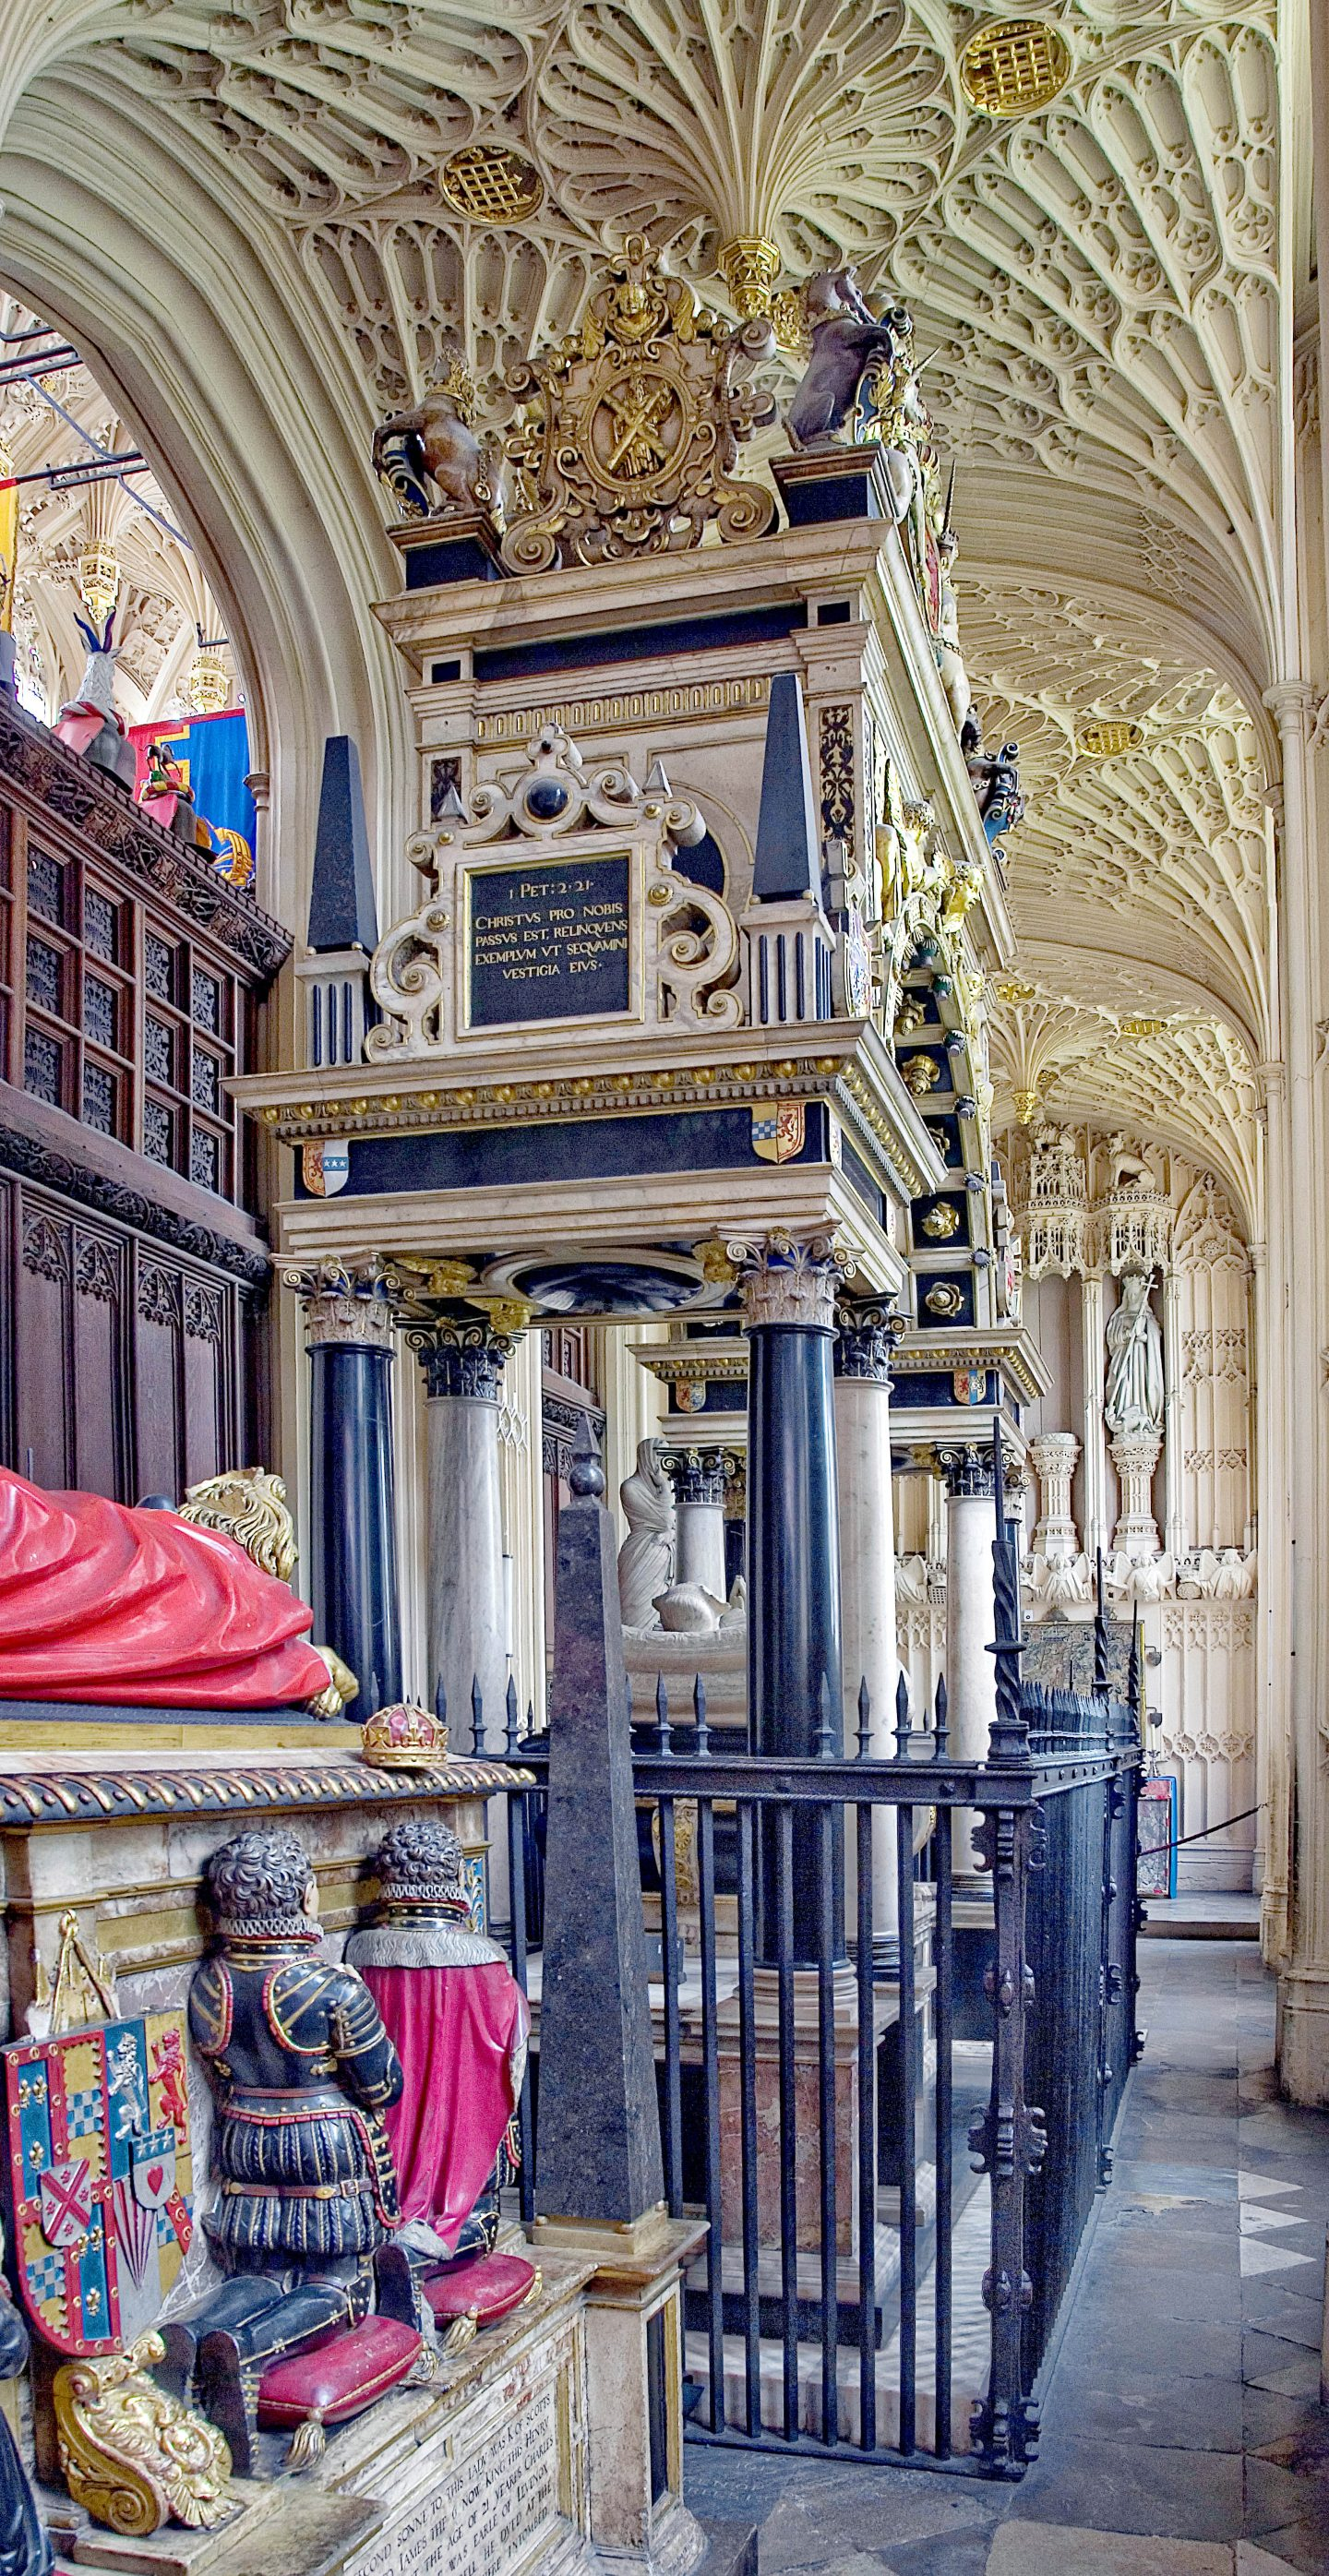 Tomb of Mary Queen of Scots, Westminster Abbey.